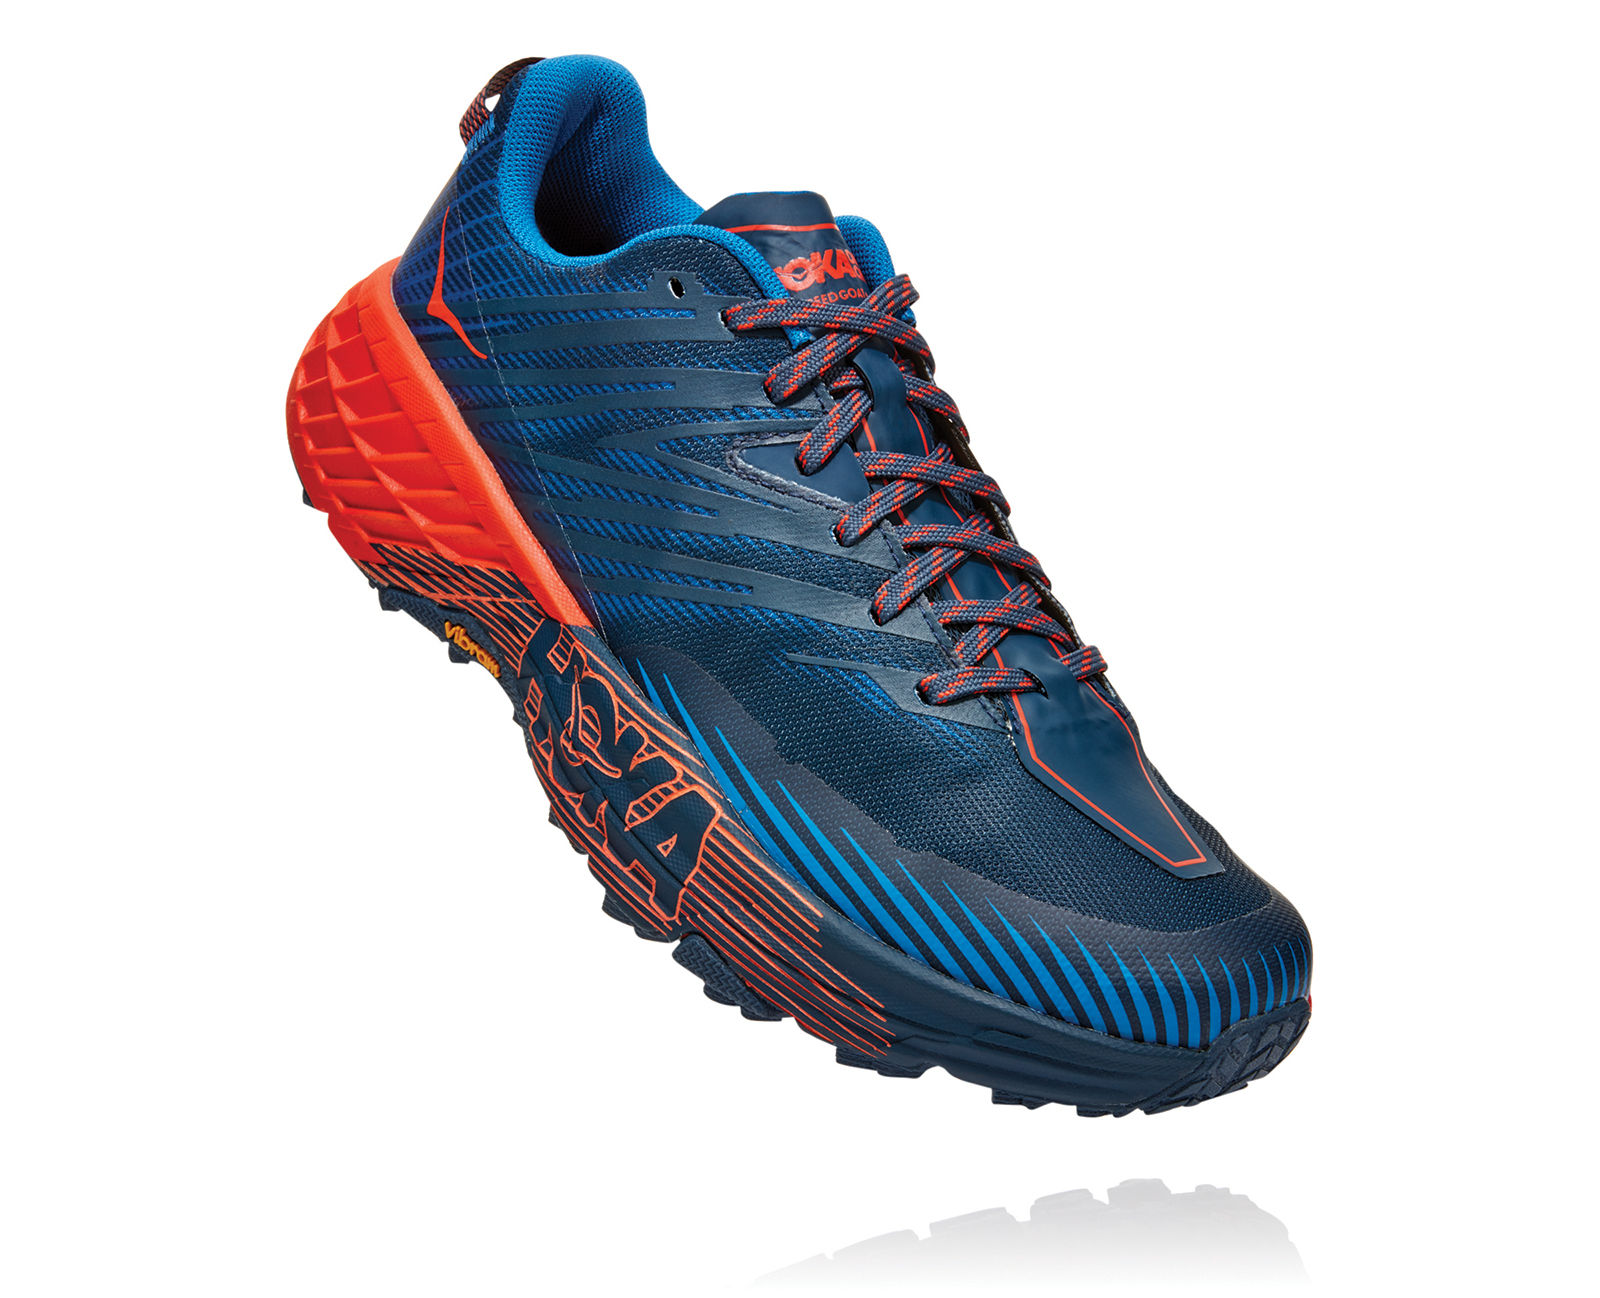 Hoka One One Speedgoat 4 (Blau Orange)